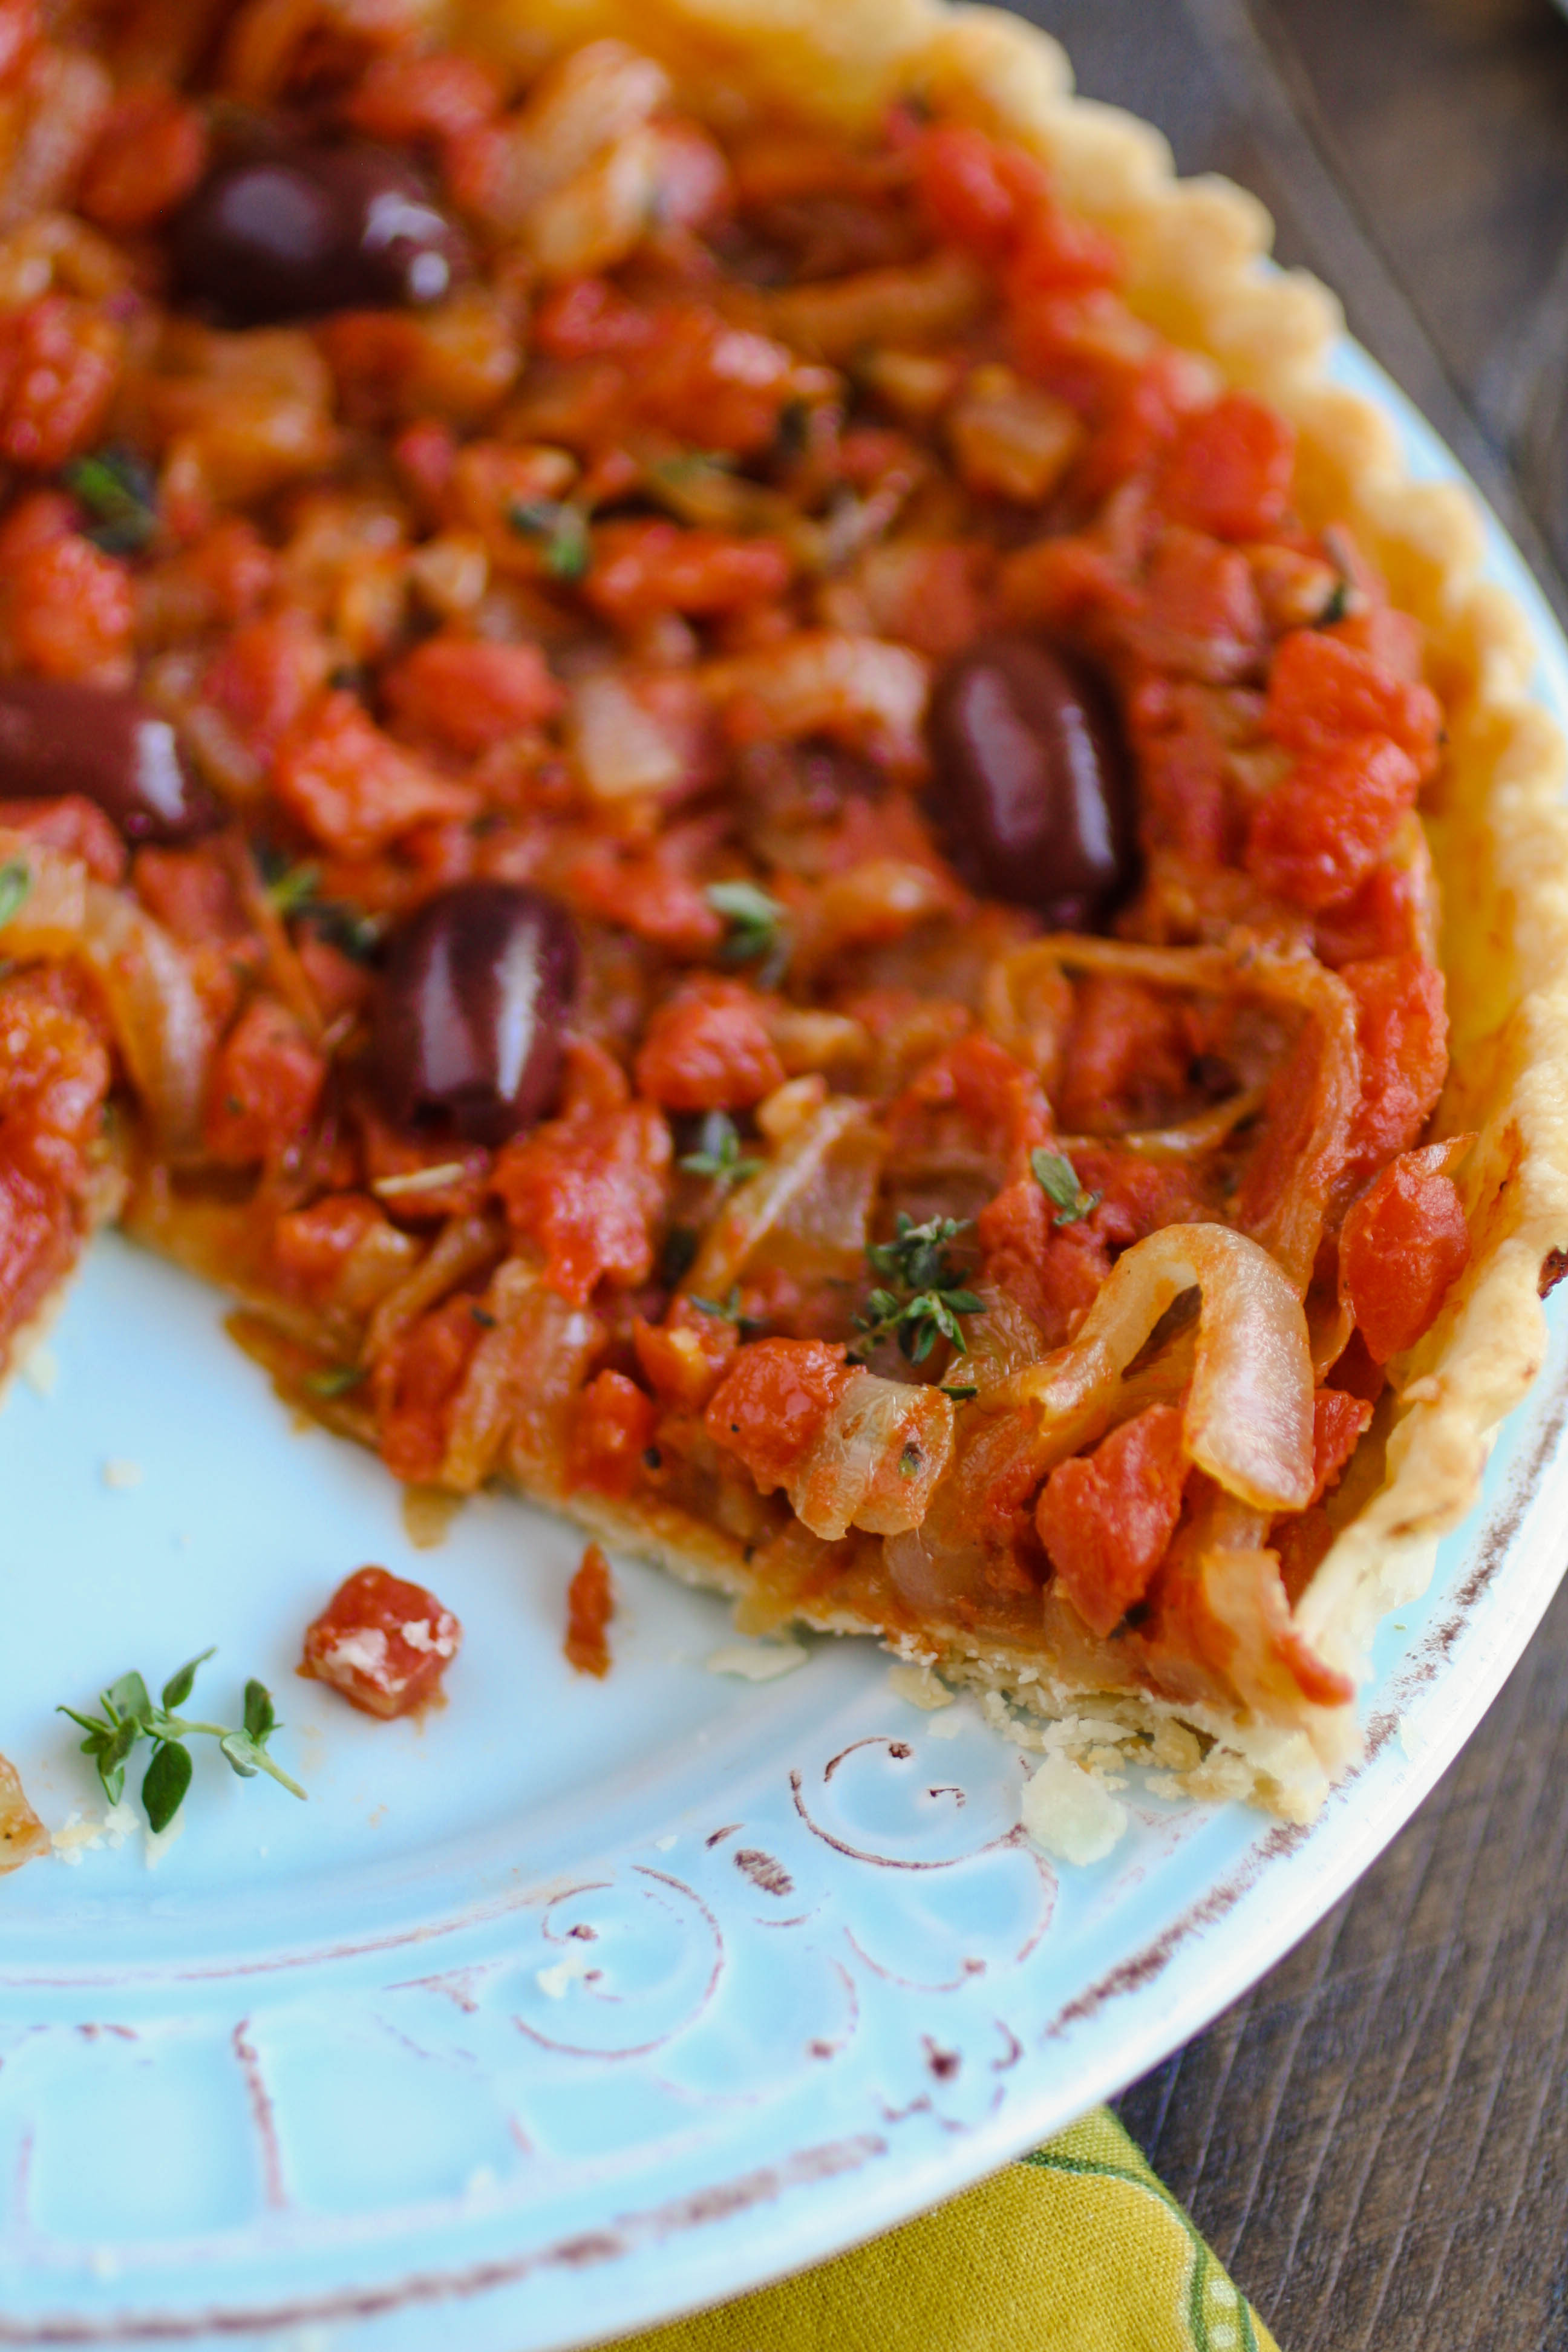 Pissaladière (French-style pizza) is a wonderful start for any meal or gathering. Serve this appetizer soon!